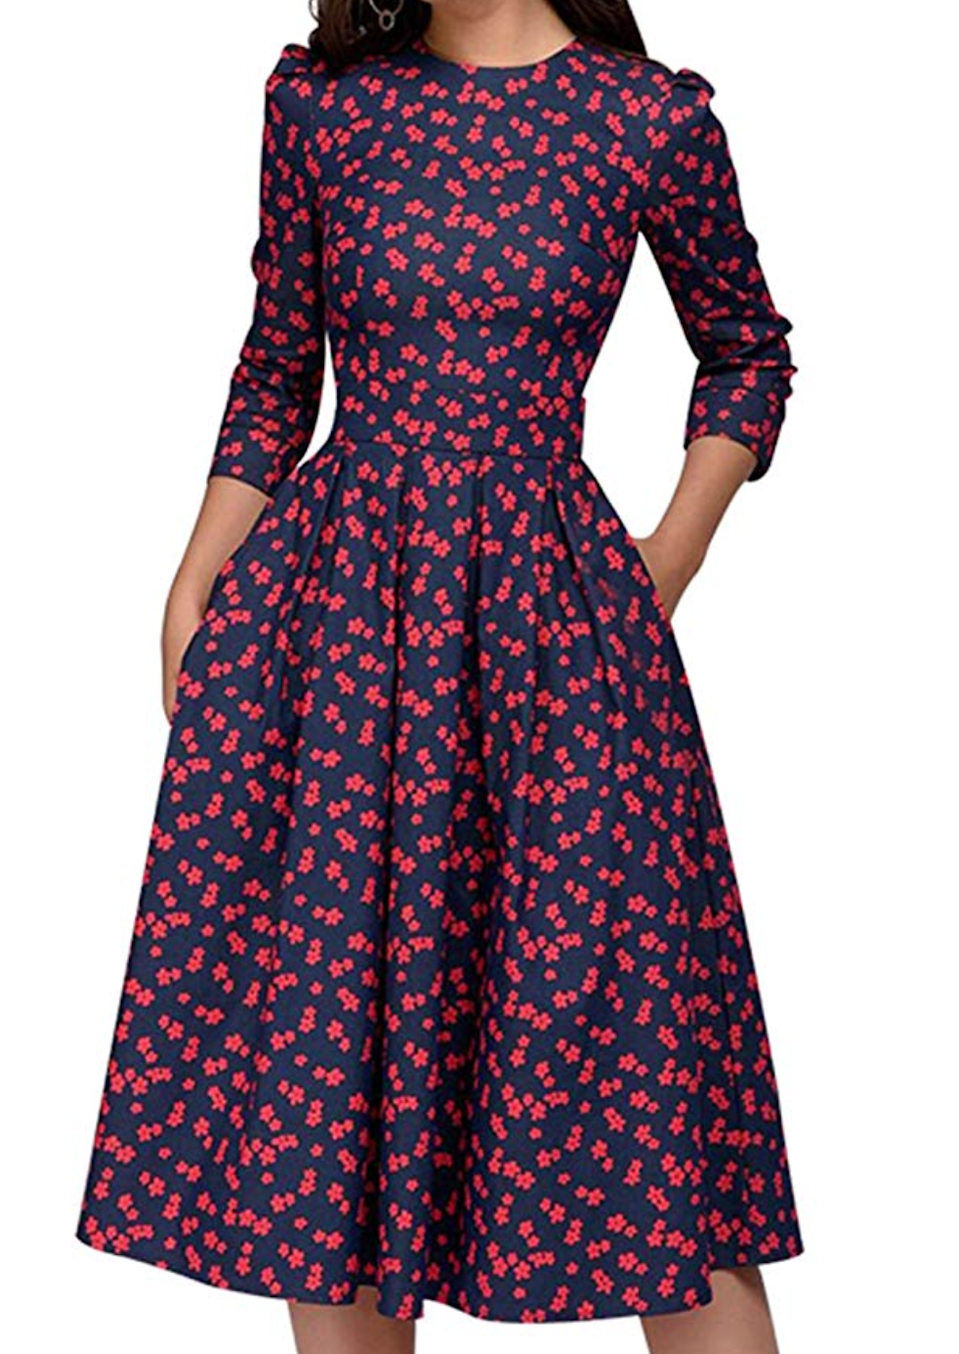 "<br><br><strong>Simple Flavor</strong> Floral Midi Dress, $, available at <a href=""https://amzn.to/2tDML0U"" rel=""nofollow noopener"" target=""_blank"" data-ylk=""slk:Amazon"" class=""link rapid-noclick-resp"">Amazon</a>"